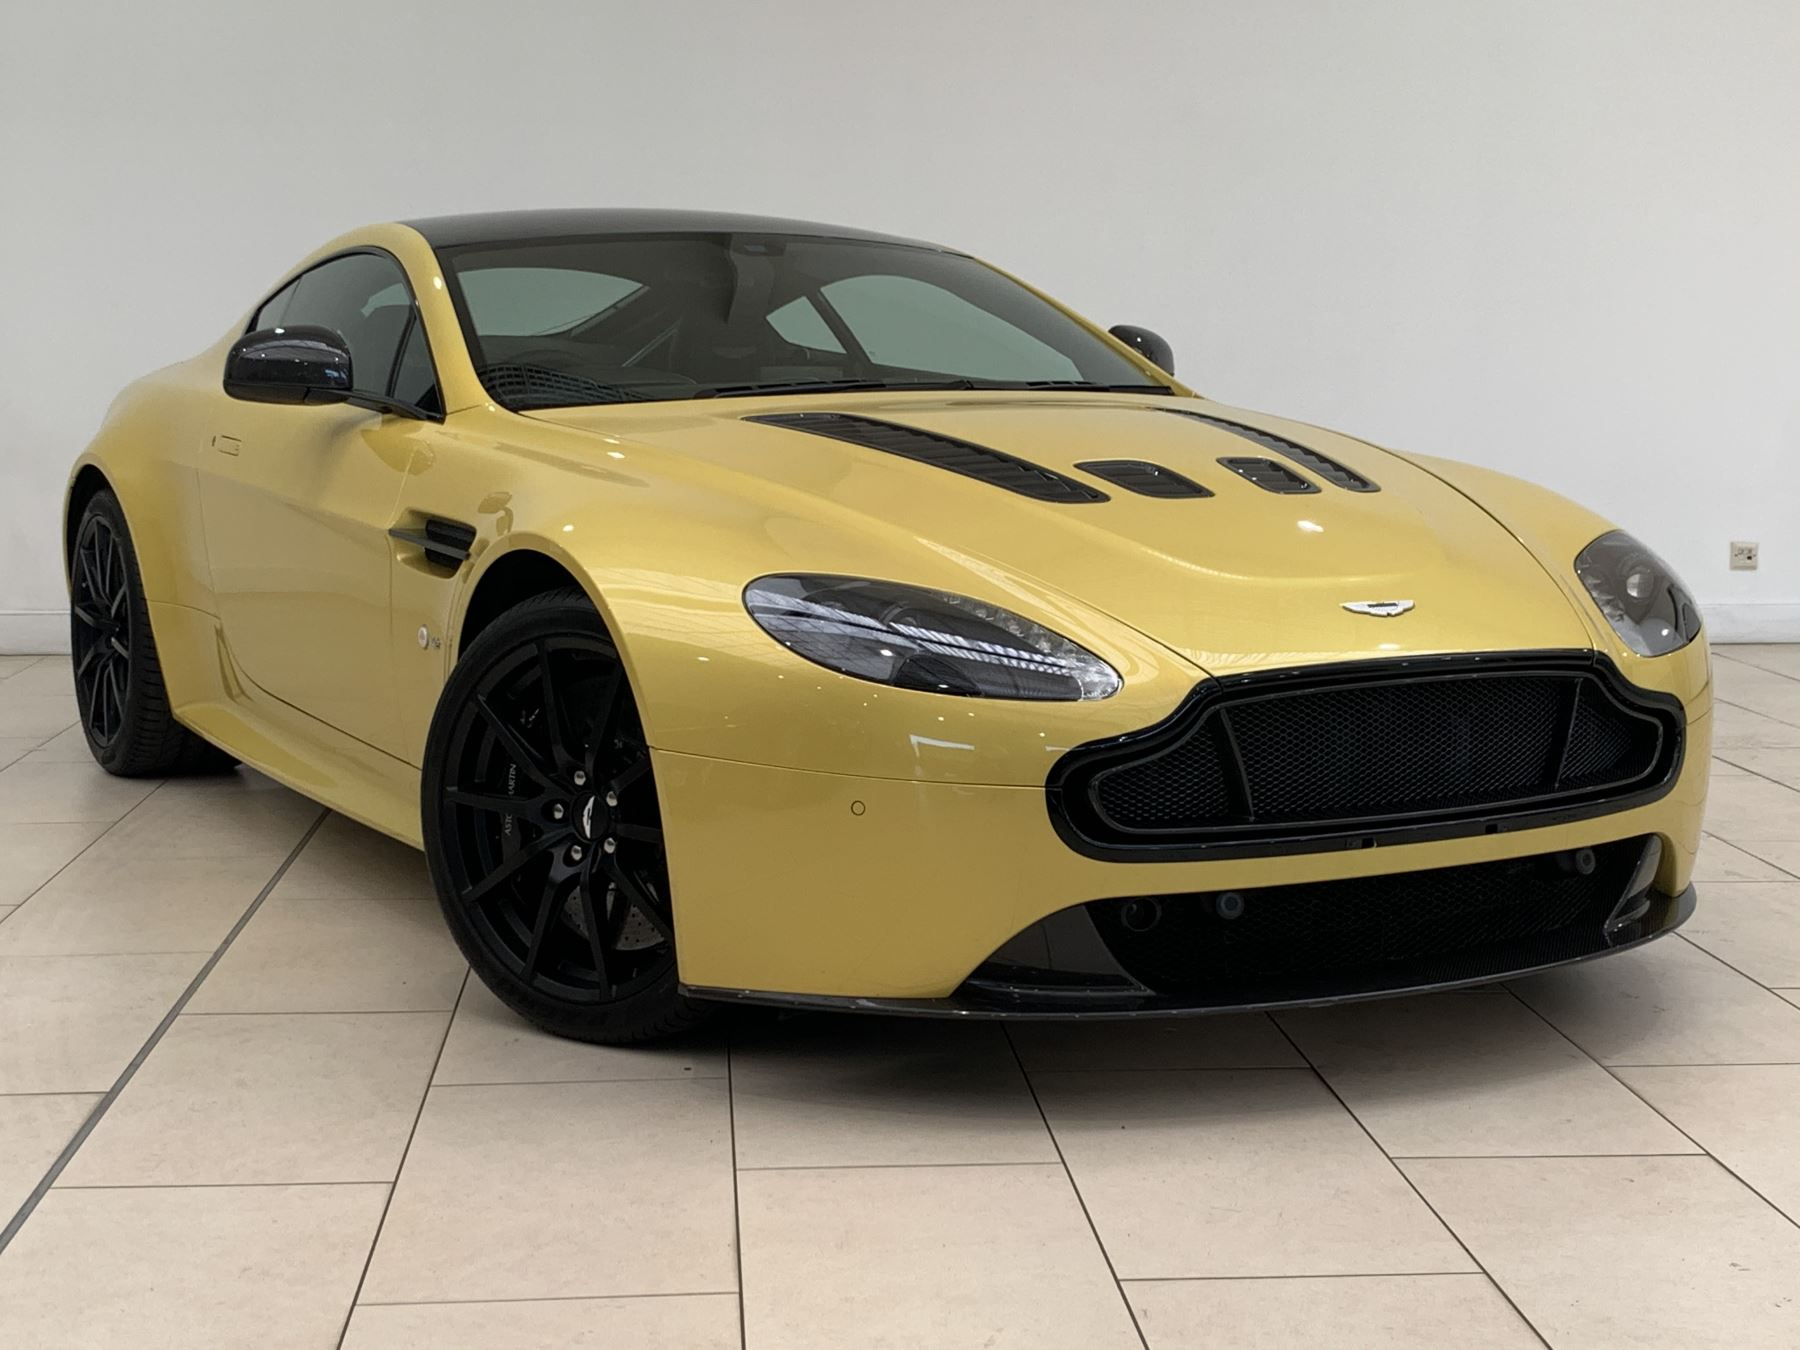 Aston Martin V12 Vantage S Coupe S 2dr Sportshift III 5.9 Automatic 3 door Coupe (2015)